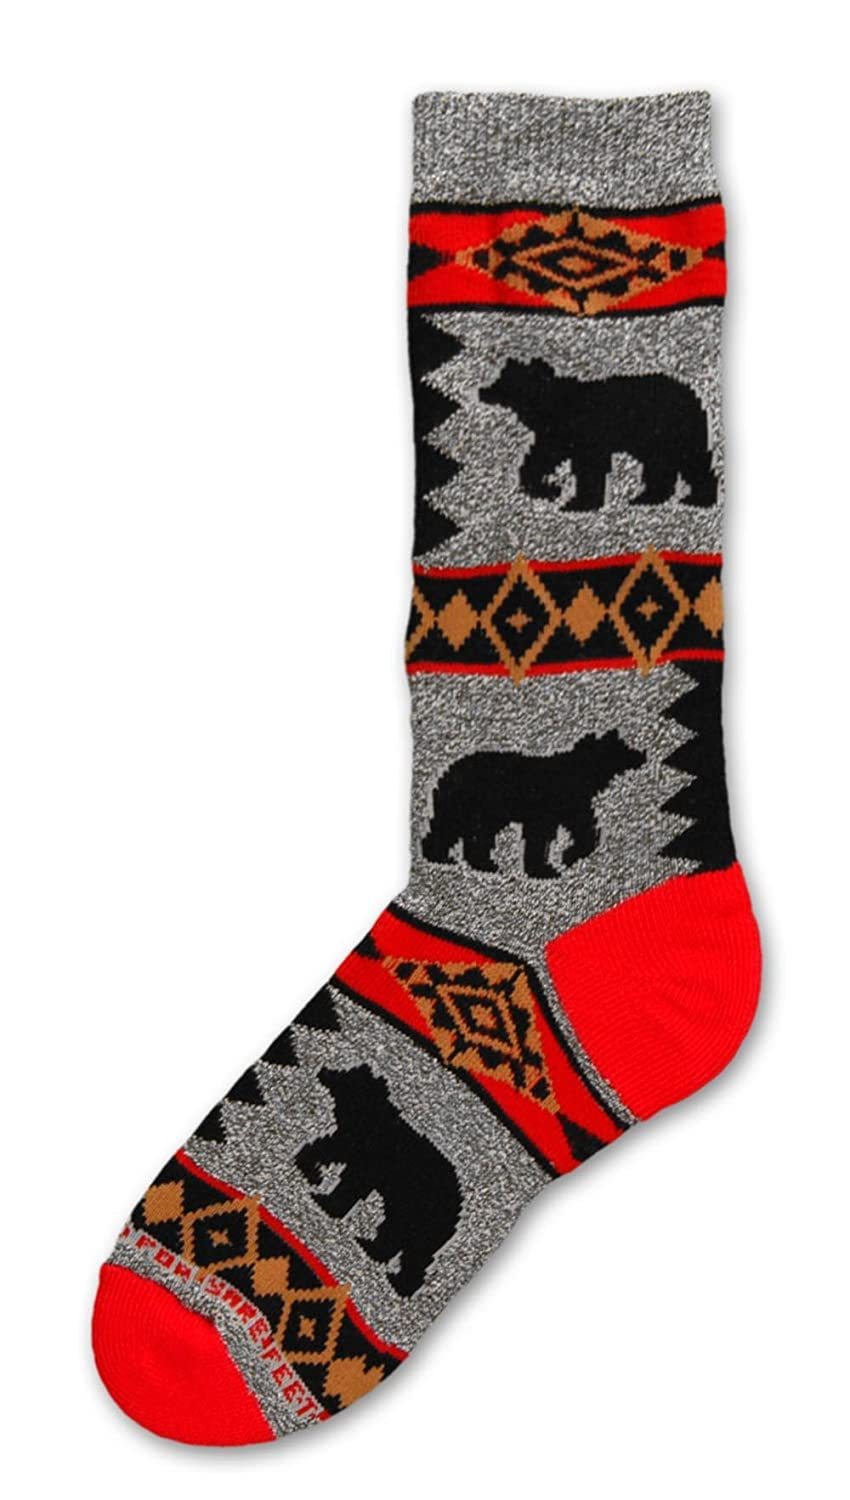 Bear Blanket Motif on Marble Grey Adult Medium Socks For Bare Feet 782892624709